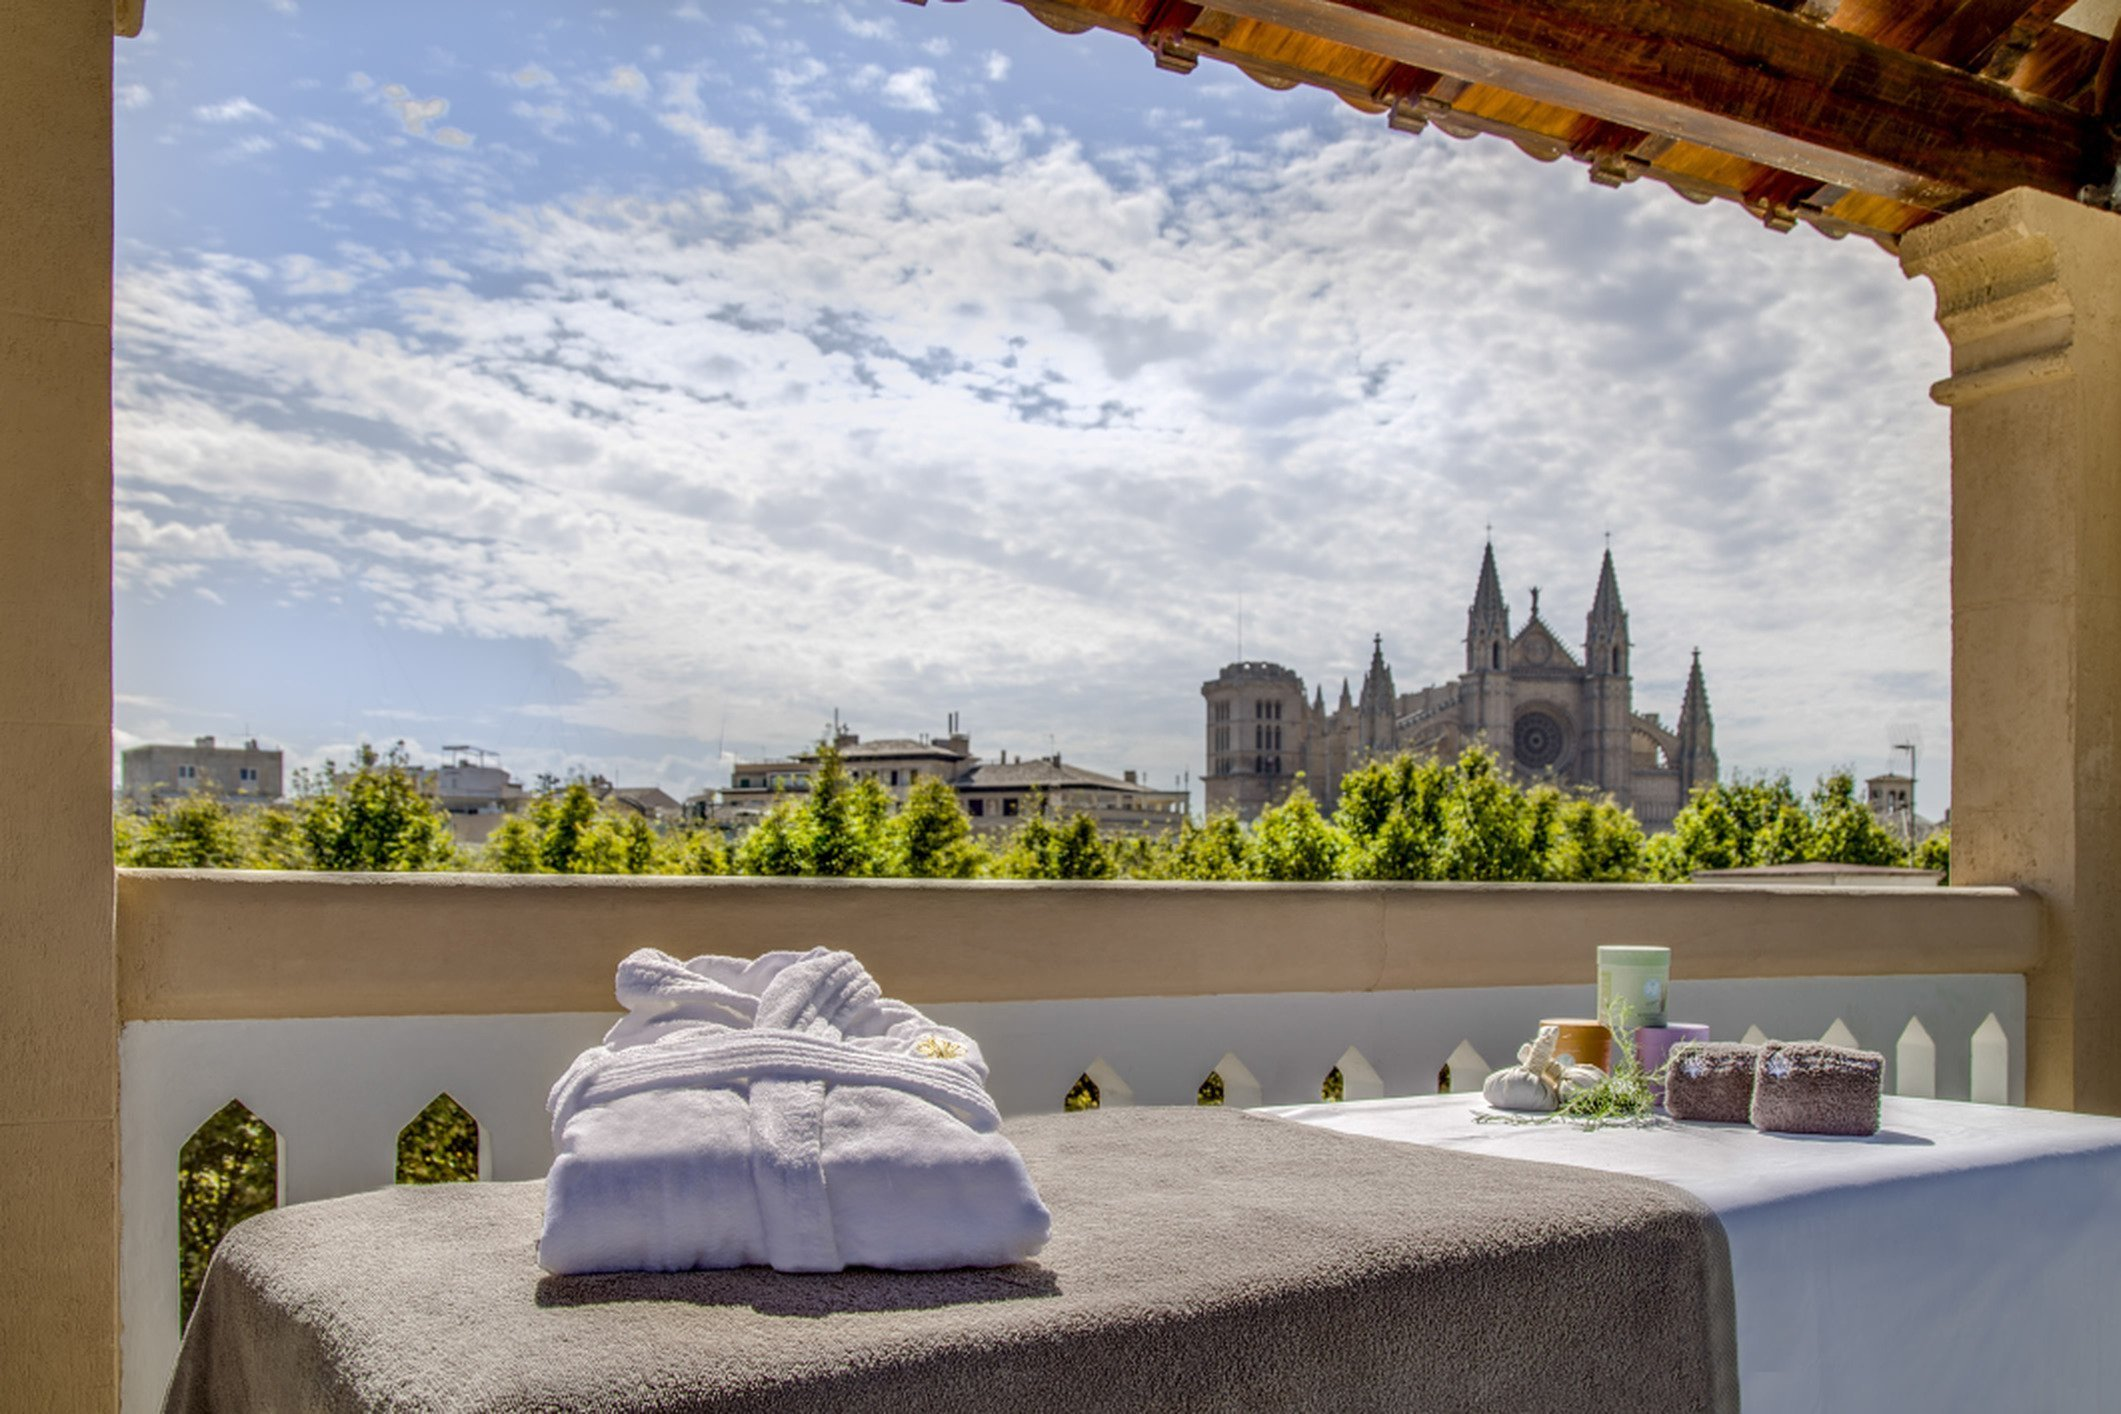 Breathtaking view - Boutique Hotel Can Alomar - Roof Terrace